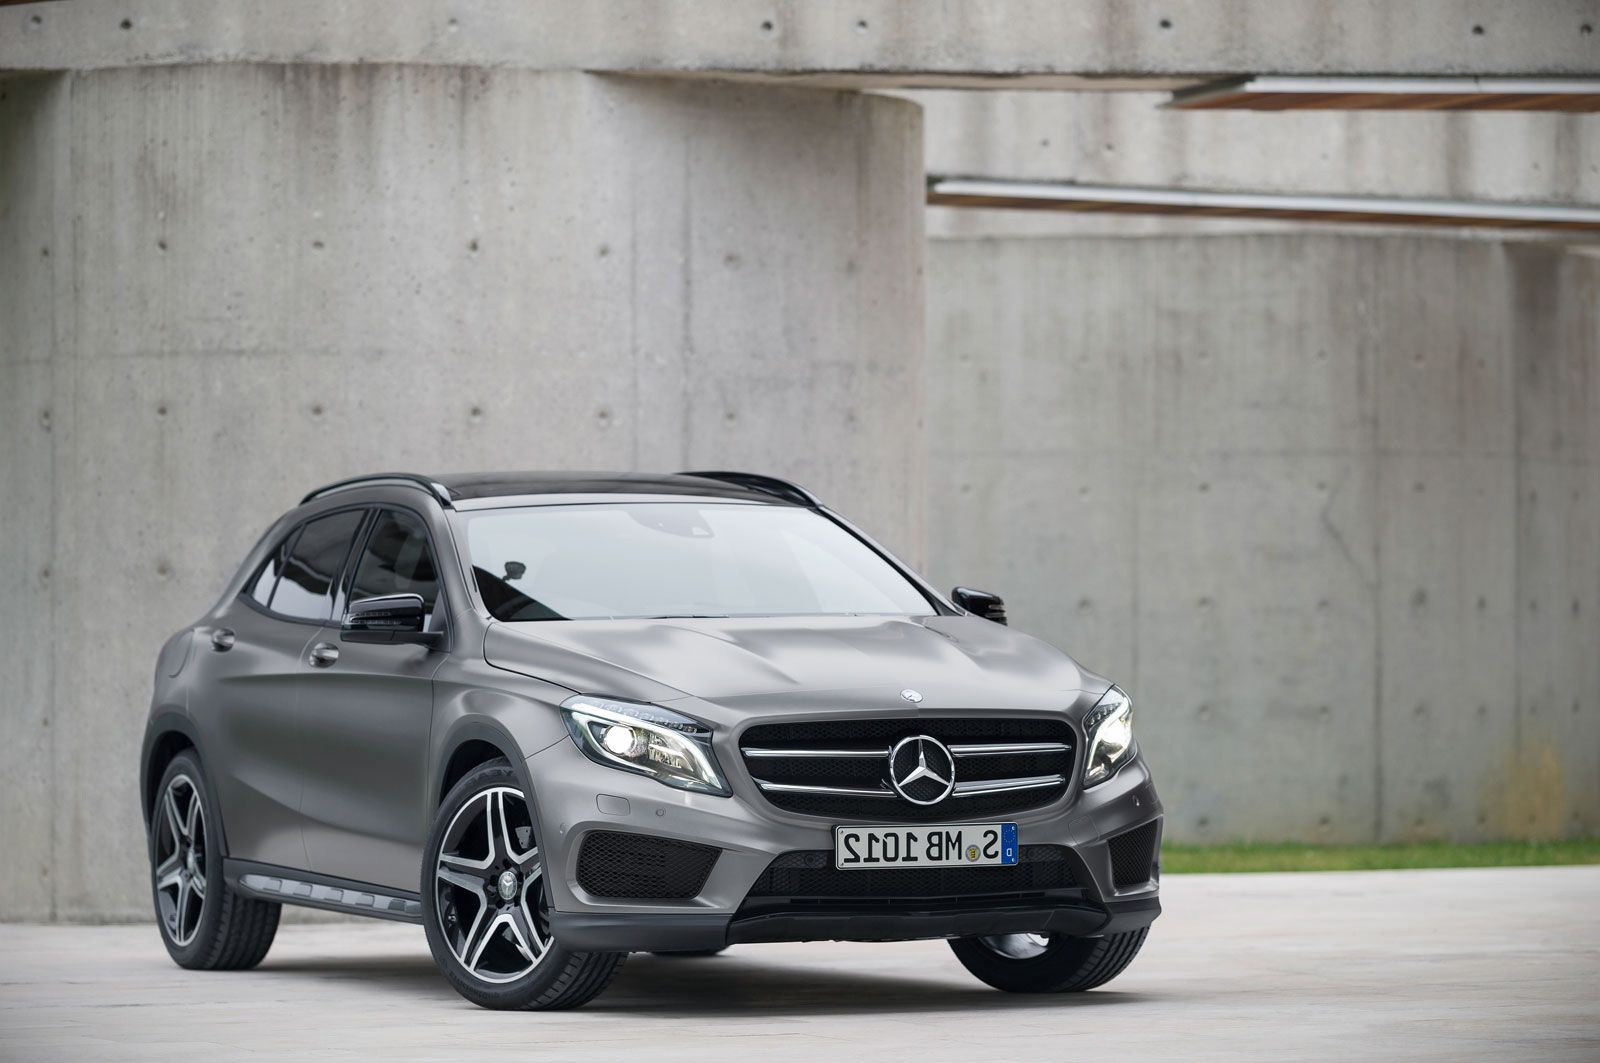 2018 Mercedes Benz GLA review